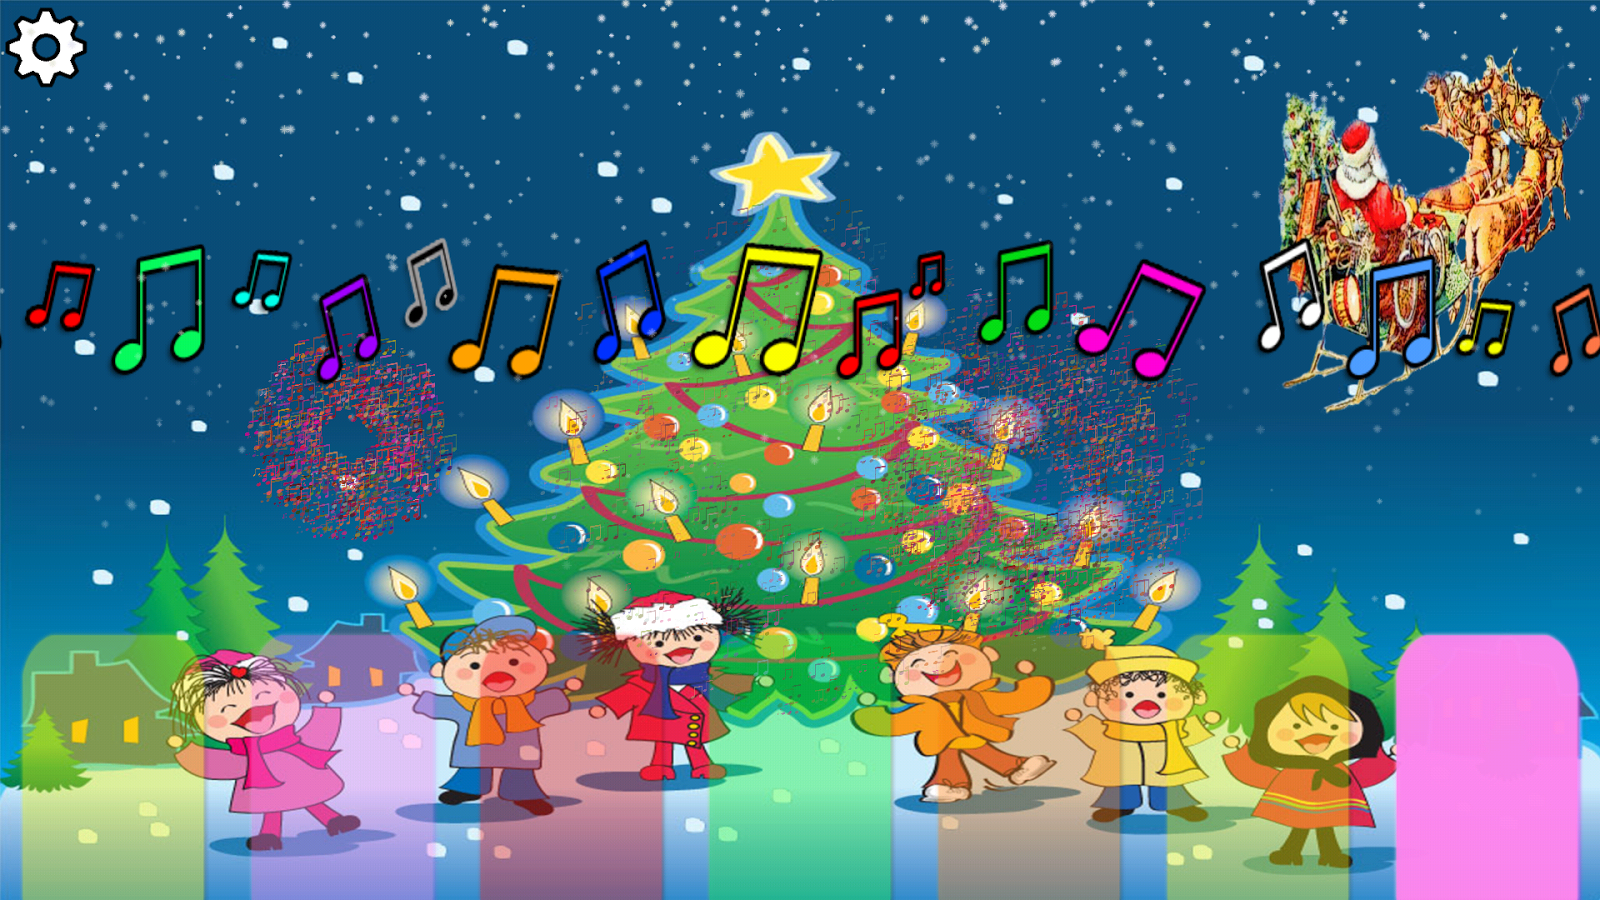 Worksheet. Christmas Games for Kids  Android Apps on Google Play